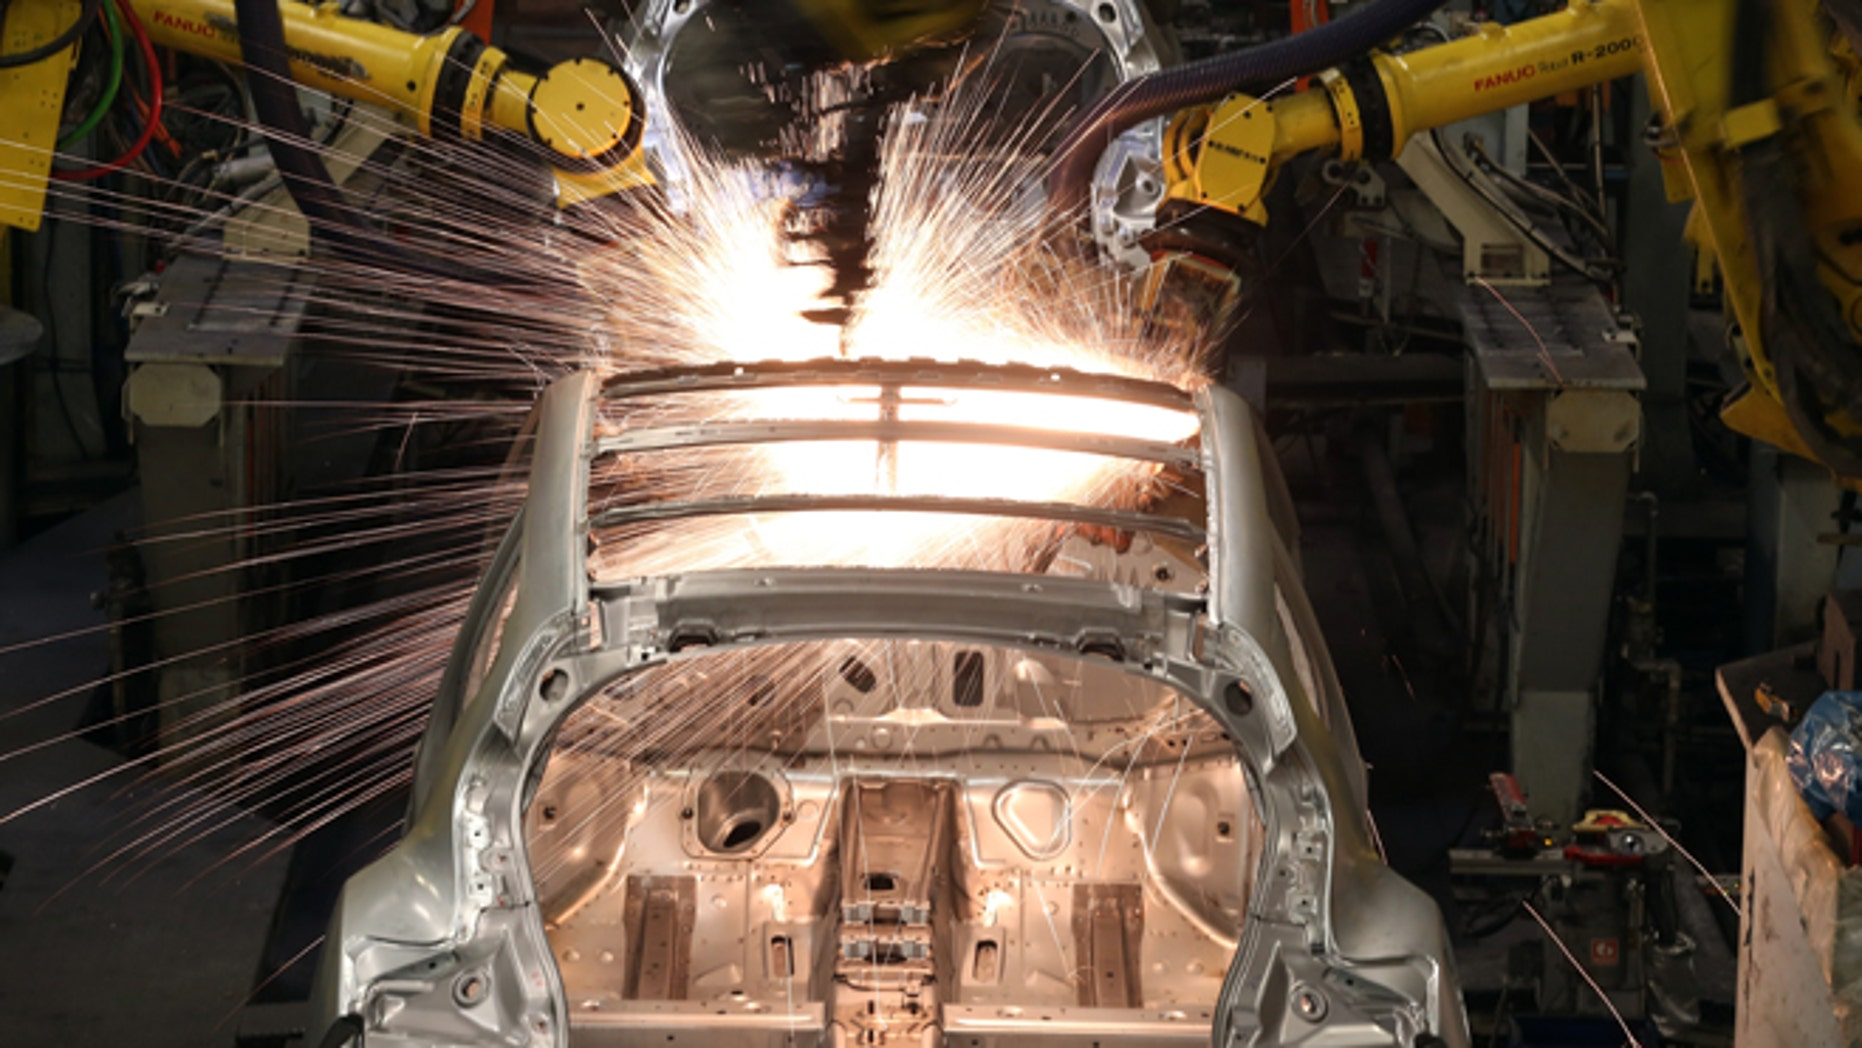 Robotic arms assemble and weld the body shell of a Nissan car on the production line. (Photo by Christopher Furlong/Getty Images)